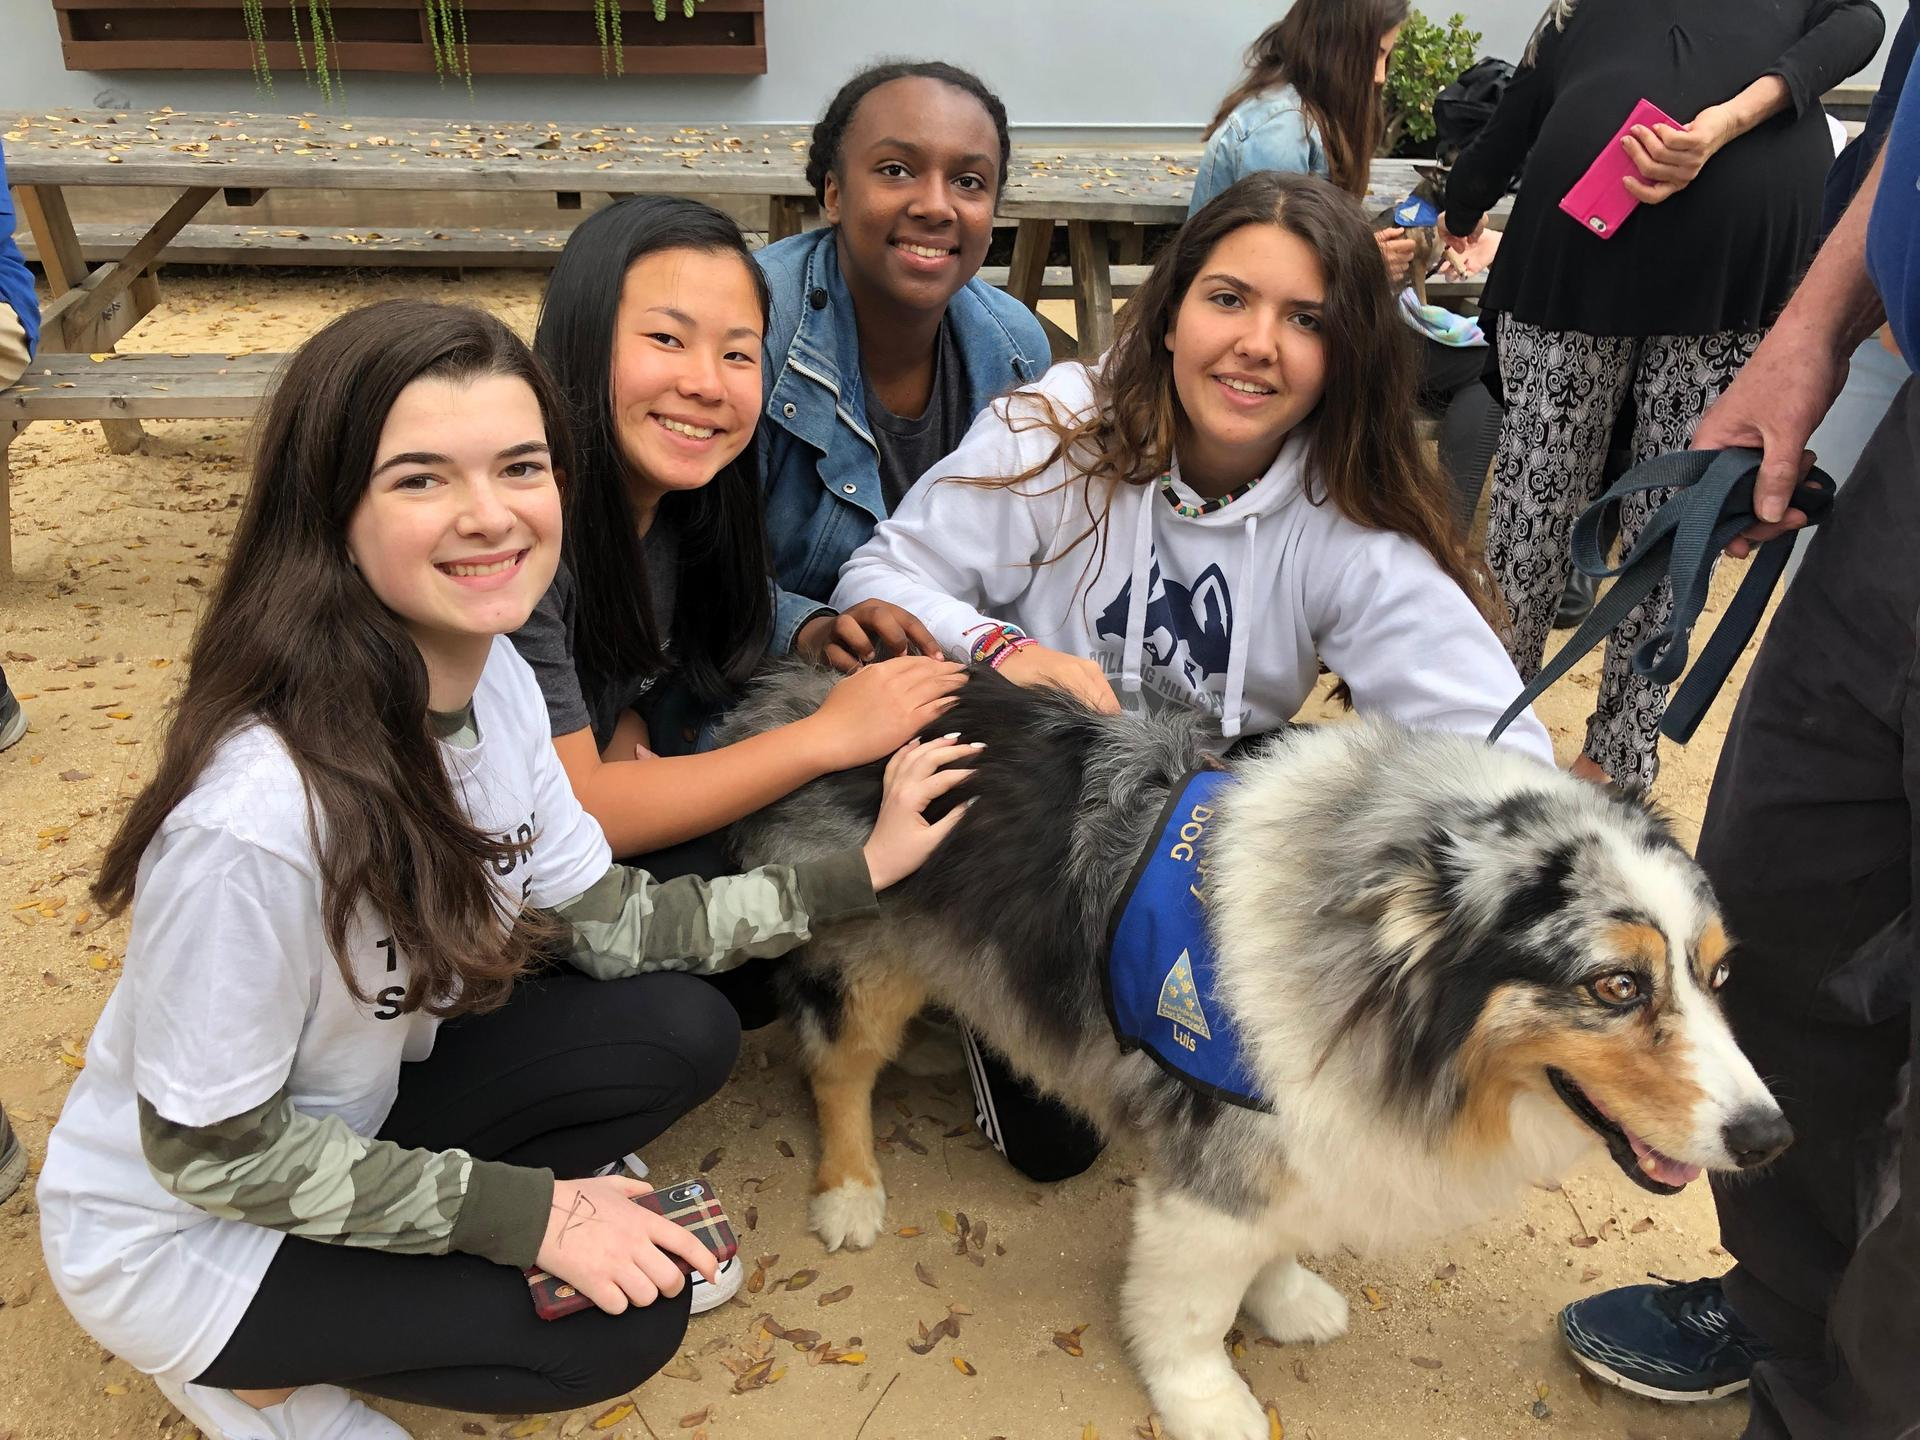 Bring Change 2 Mind Club with therapy dog they brought to campus